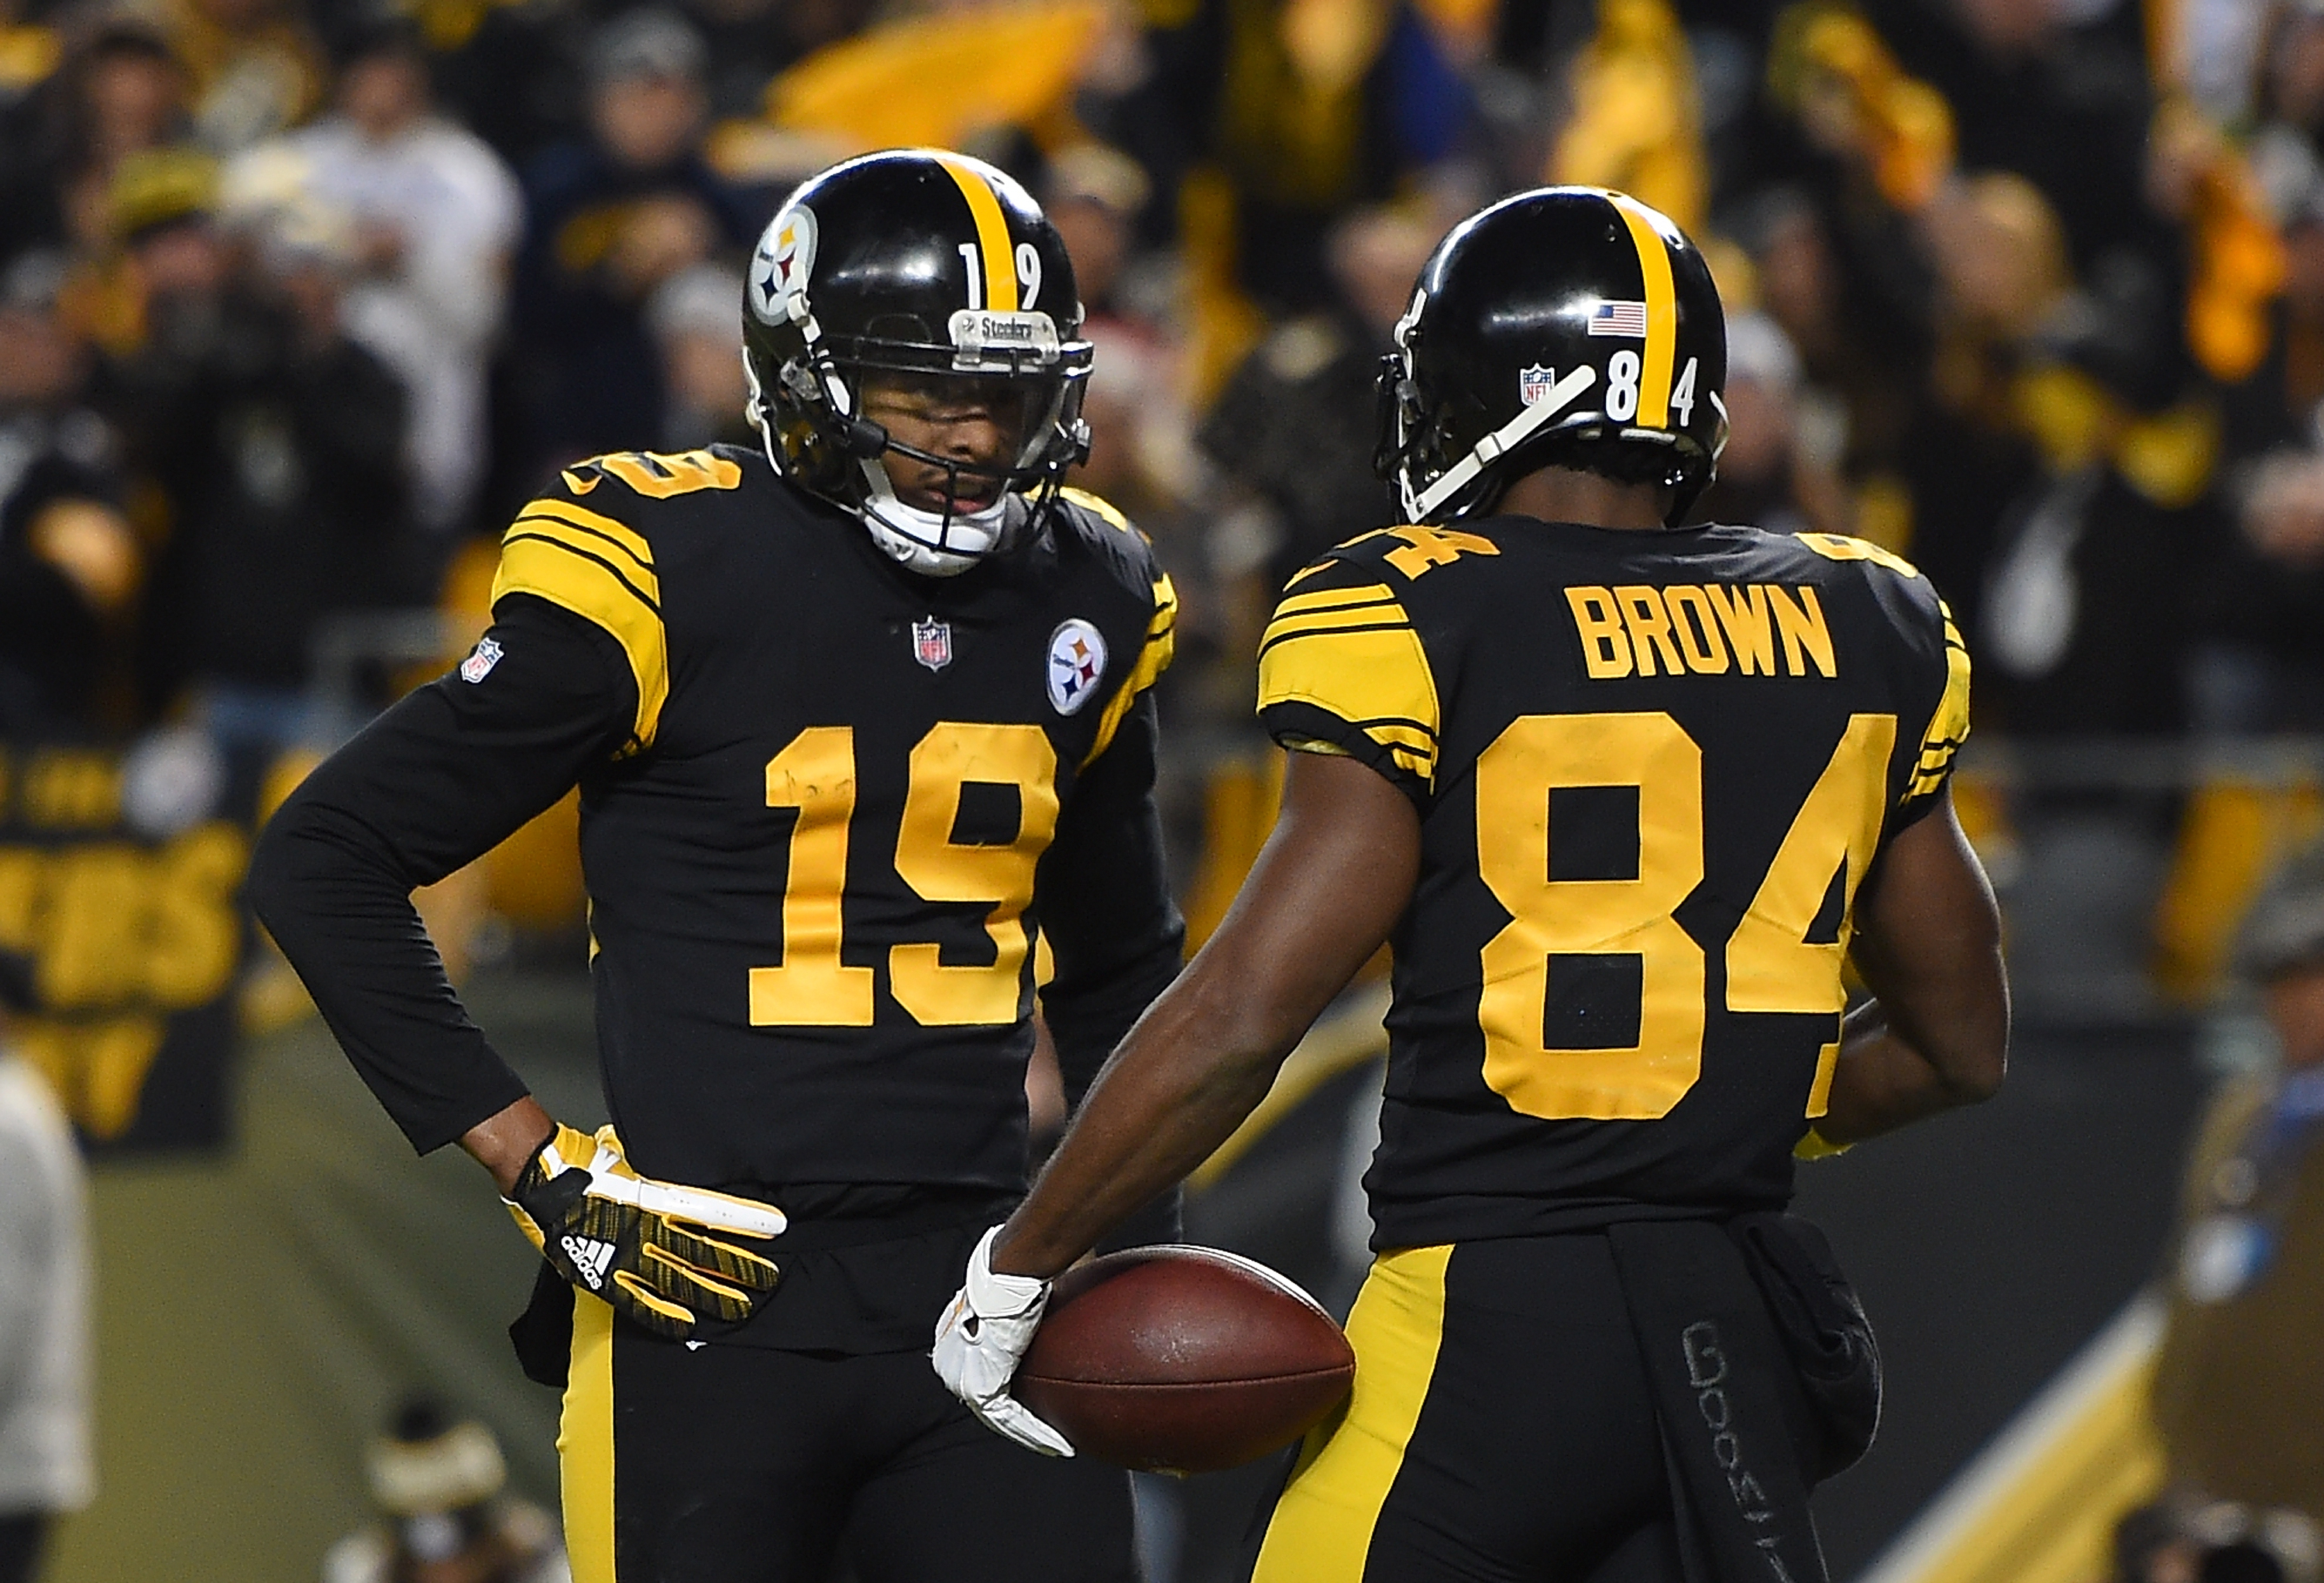 ad993144936 JuJu Smith-Schuster named to the Pro Bowl as an alternate in place of  Antonio Brown